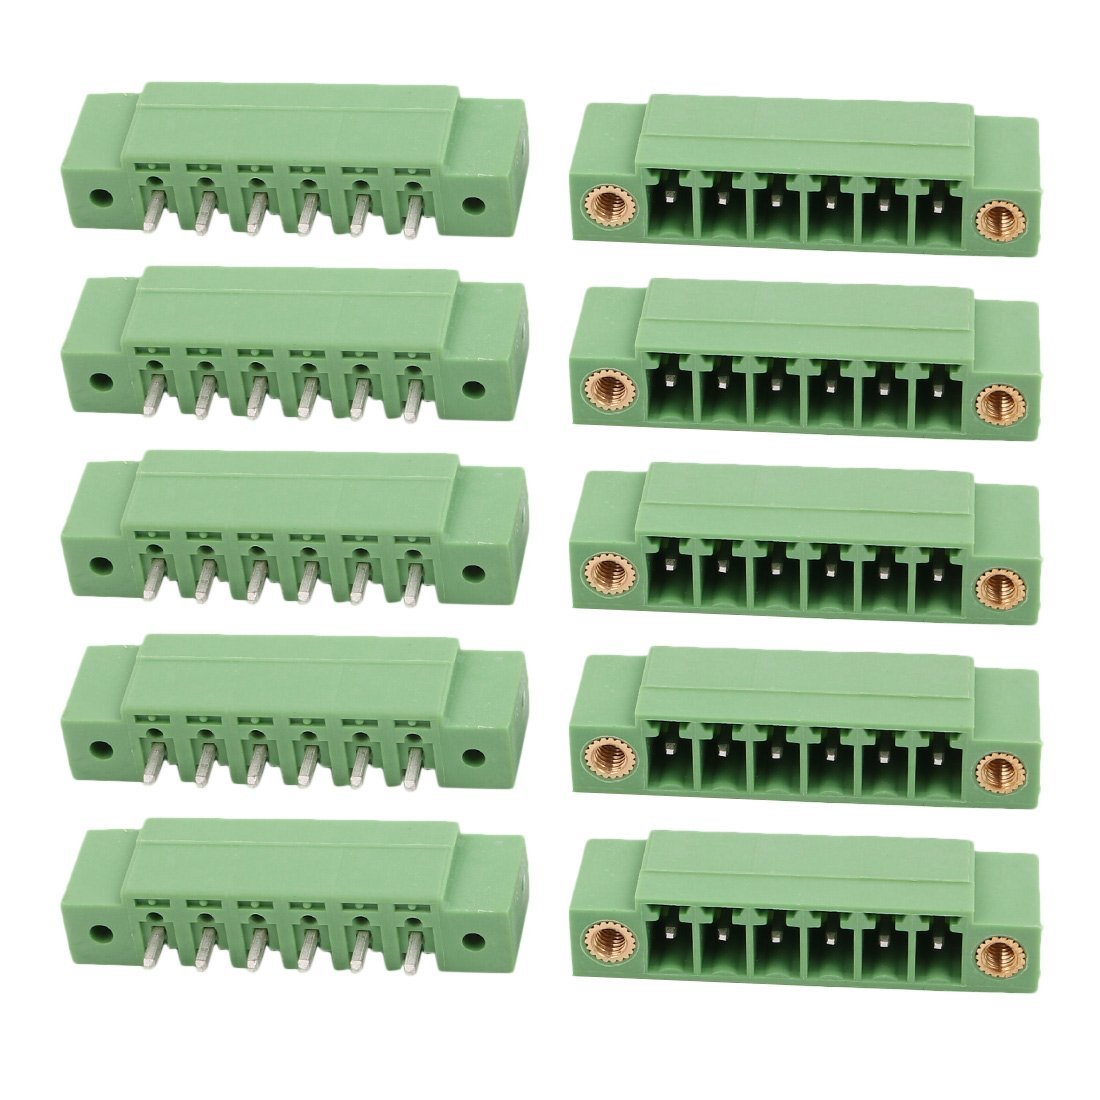 uxcell 10Pcs AC 300V 8A 3.81mm Pitch 6P Terminal Block Wire Connection for PCB Mounting